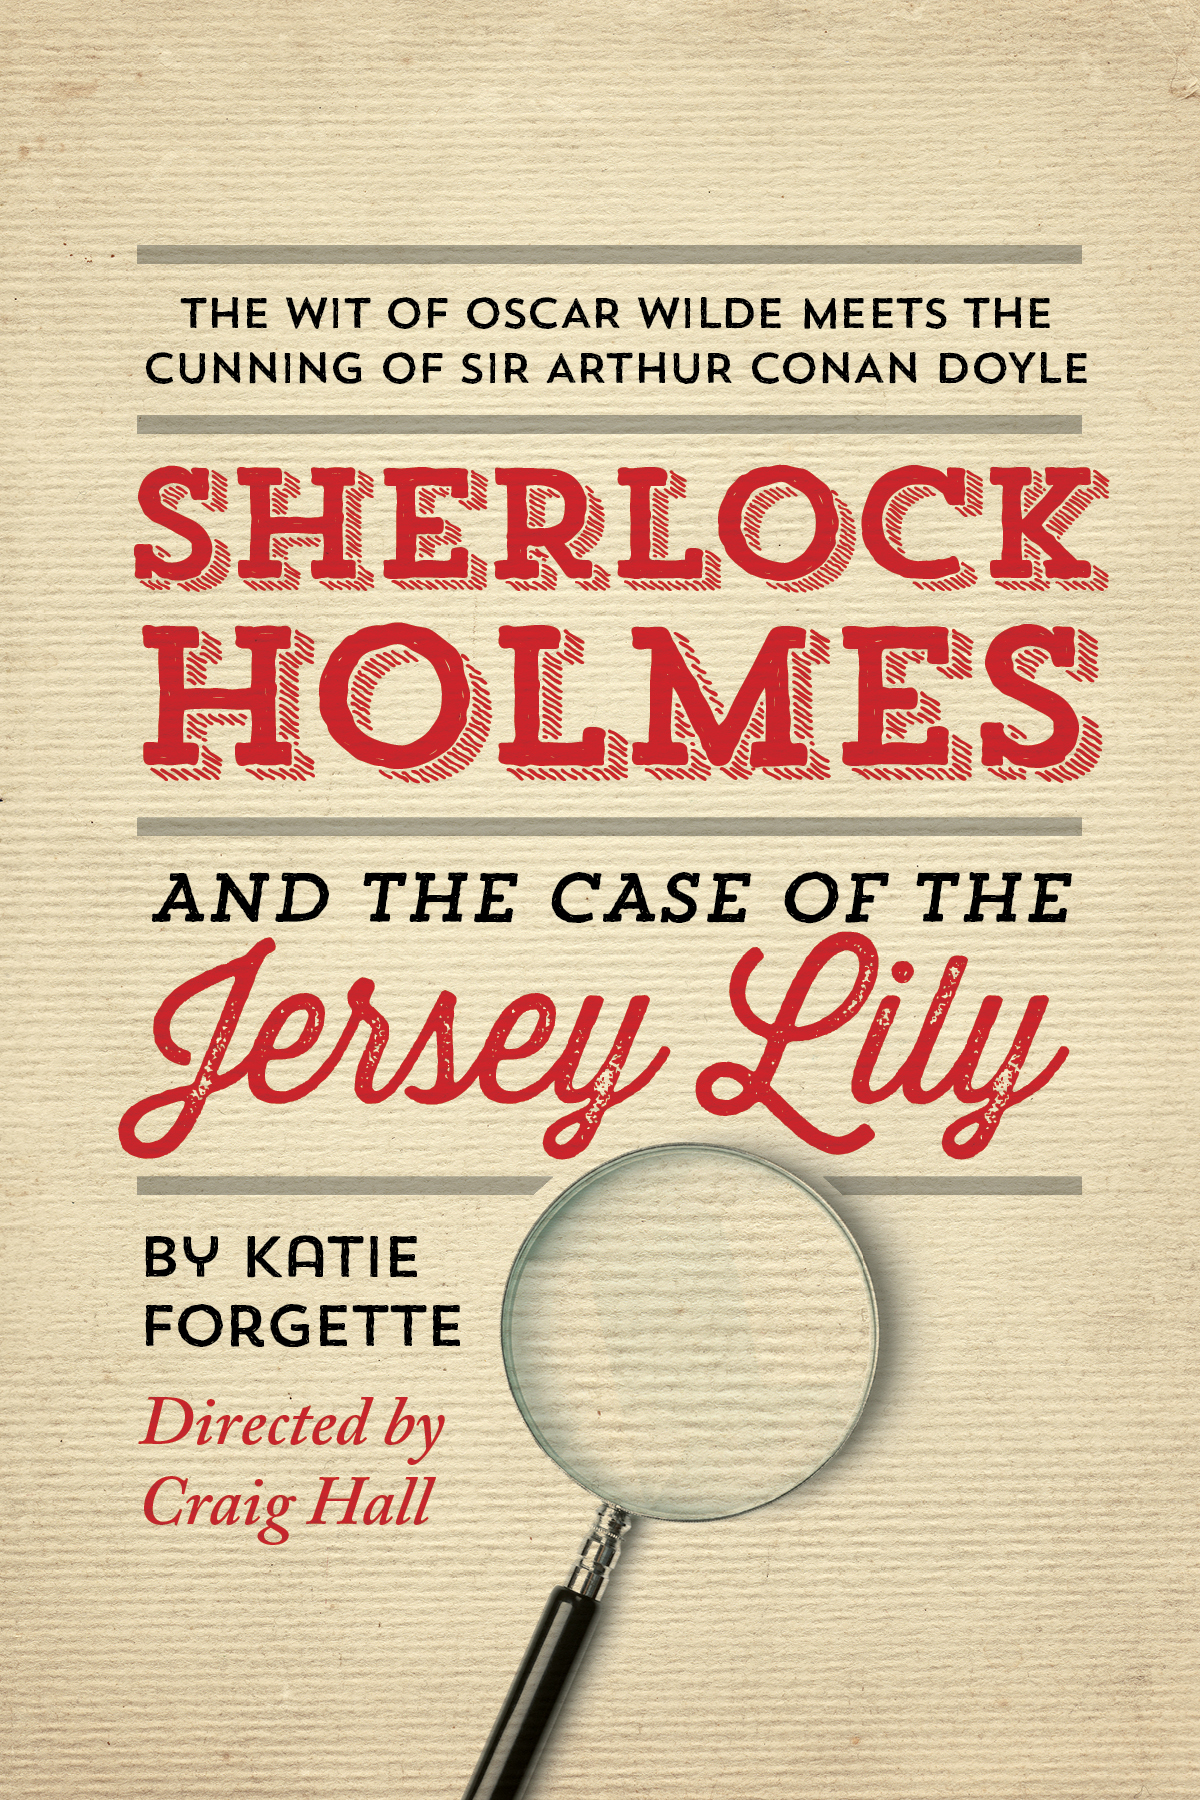 SHERLOCK HOLMES AND THE CASE OF THE JERSEY LILY